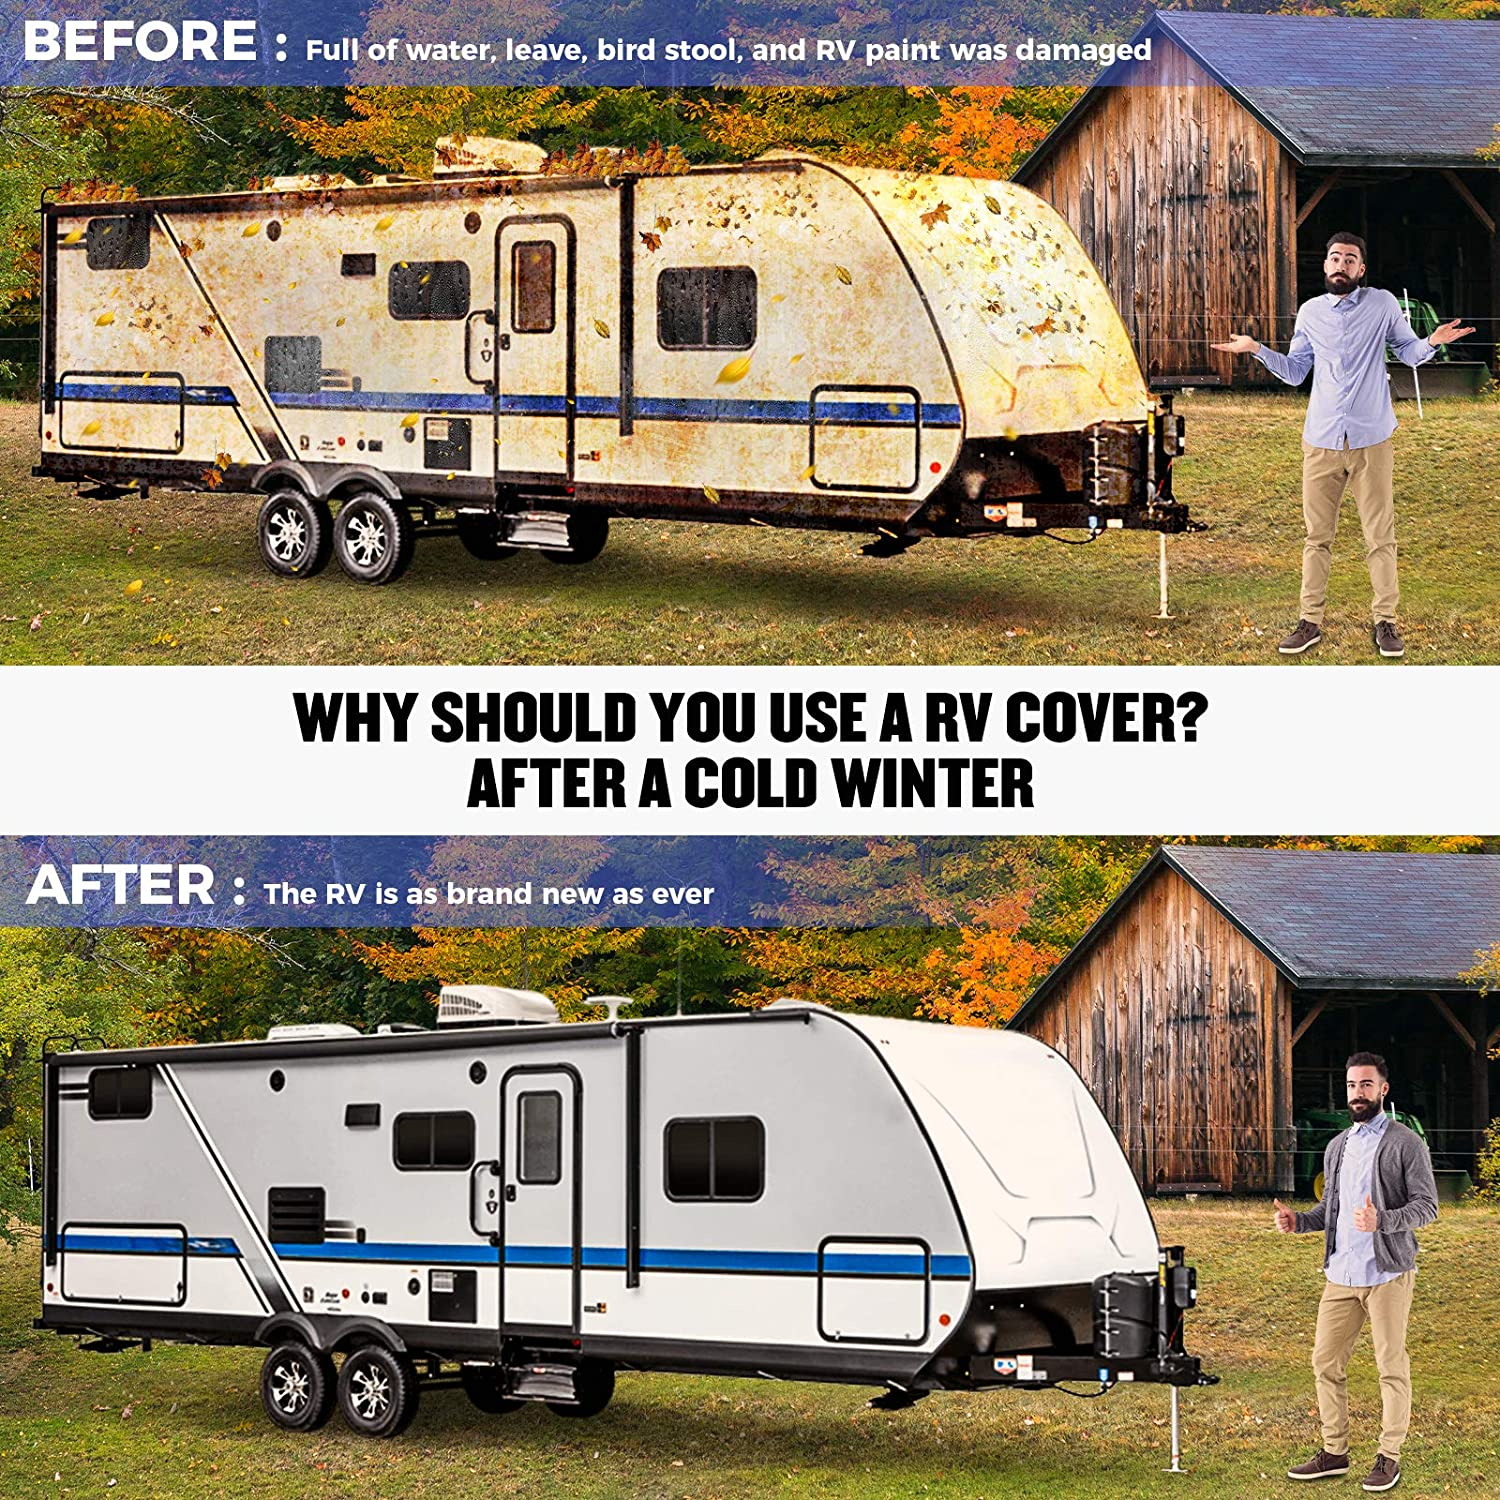 Size: 359 X 102 X 103 Windproof 4 Layers Snow Motorhome RV Cover BougeRV Travel Trailer RV Cover Waterproof Camper Cover fit for 27-29 Travel Trailer RV